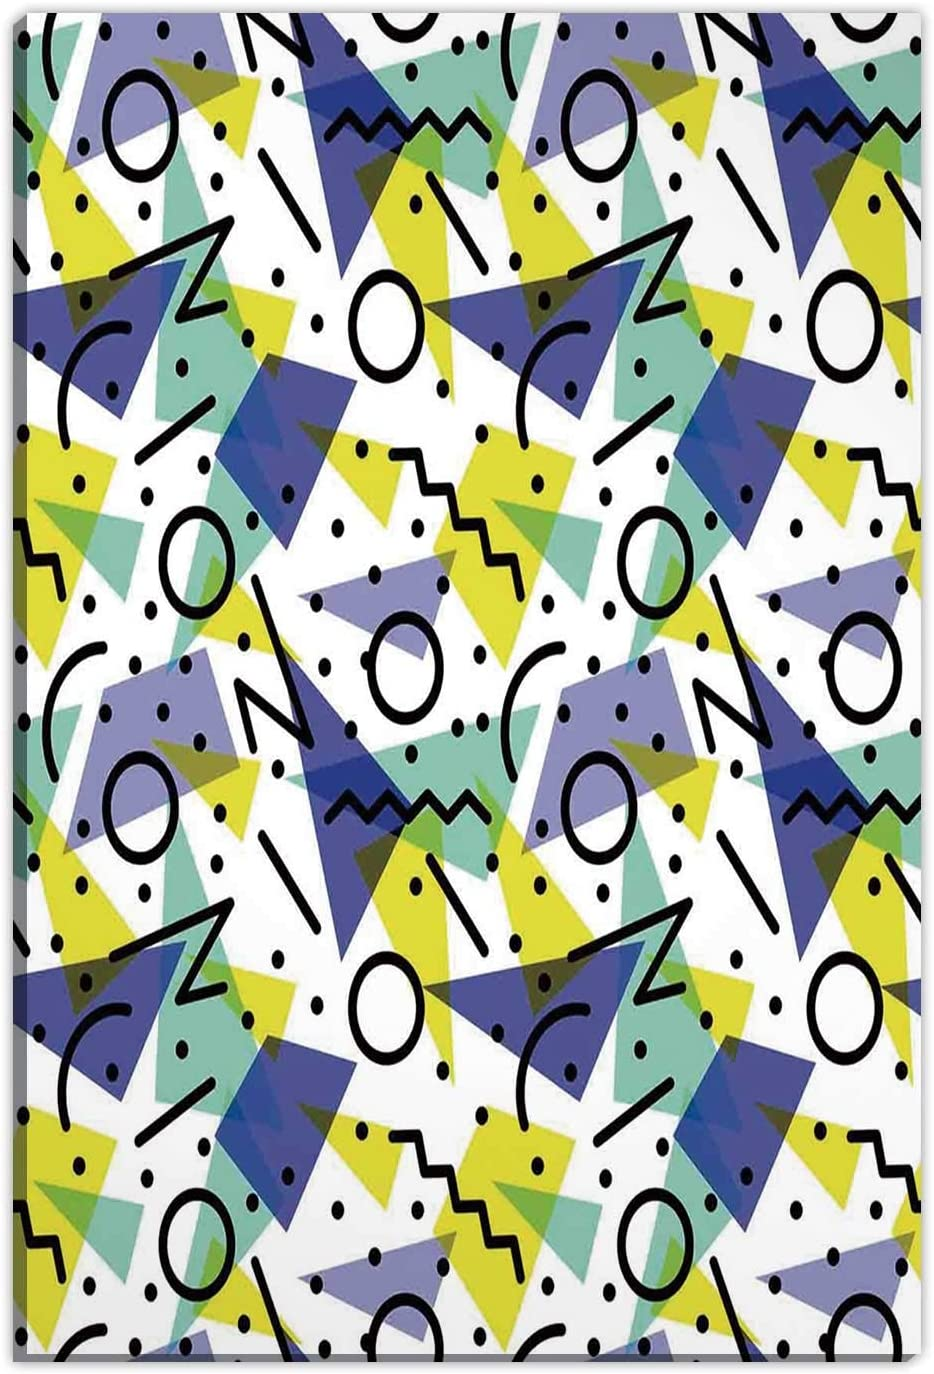 Hitecera Modern,Bedroom Wall Decor,Geometrical Retro 80s Themed OKJEFF 191486 with Lines Circles and Spots Print,Home Decorations for Living Room,12''x16''